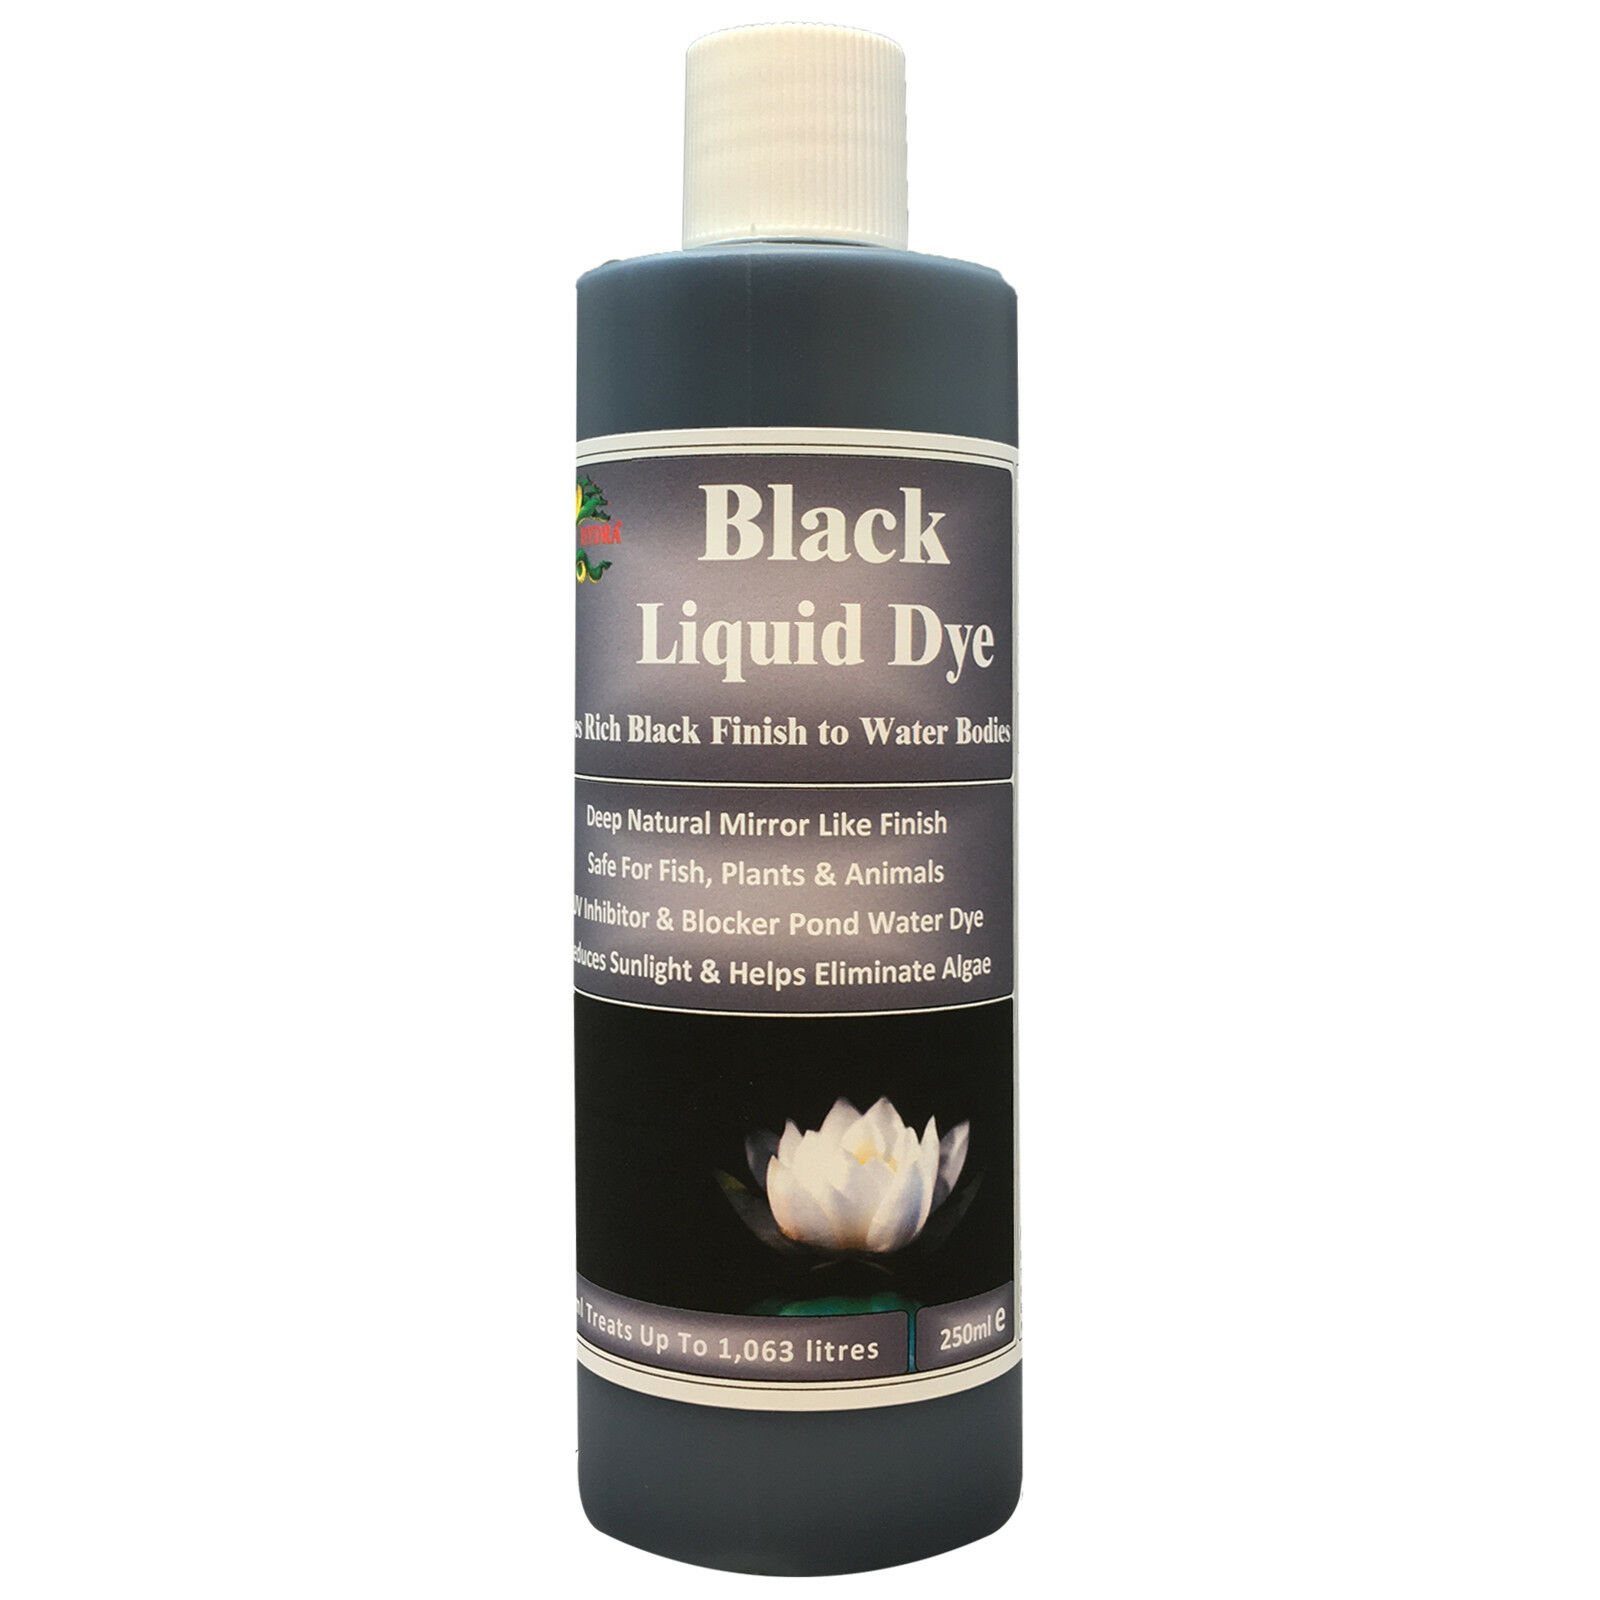 HYDRA BLACK LIQUID DYE 250ML Ponds Fountain Water Features Inhibits Algae Growth